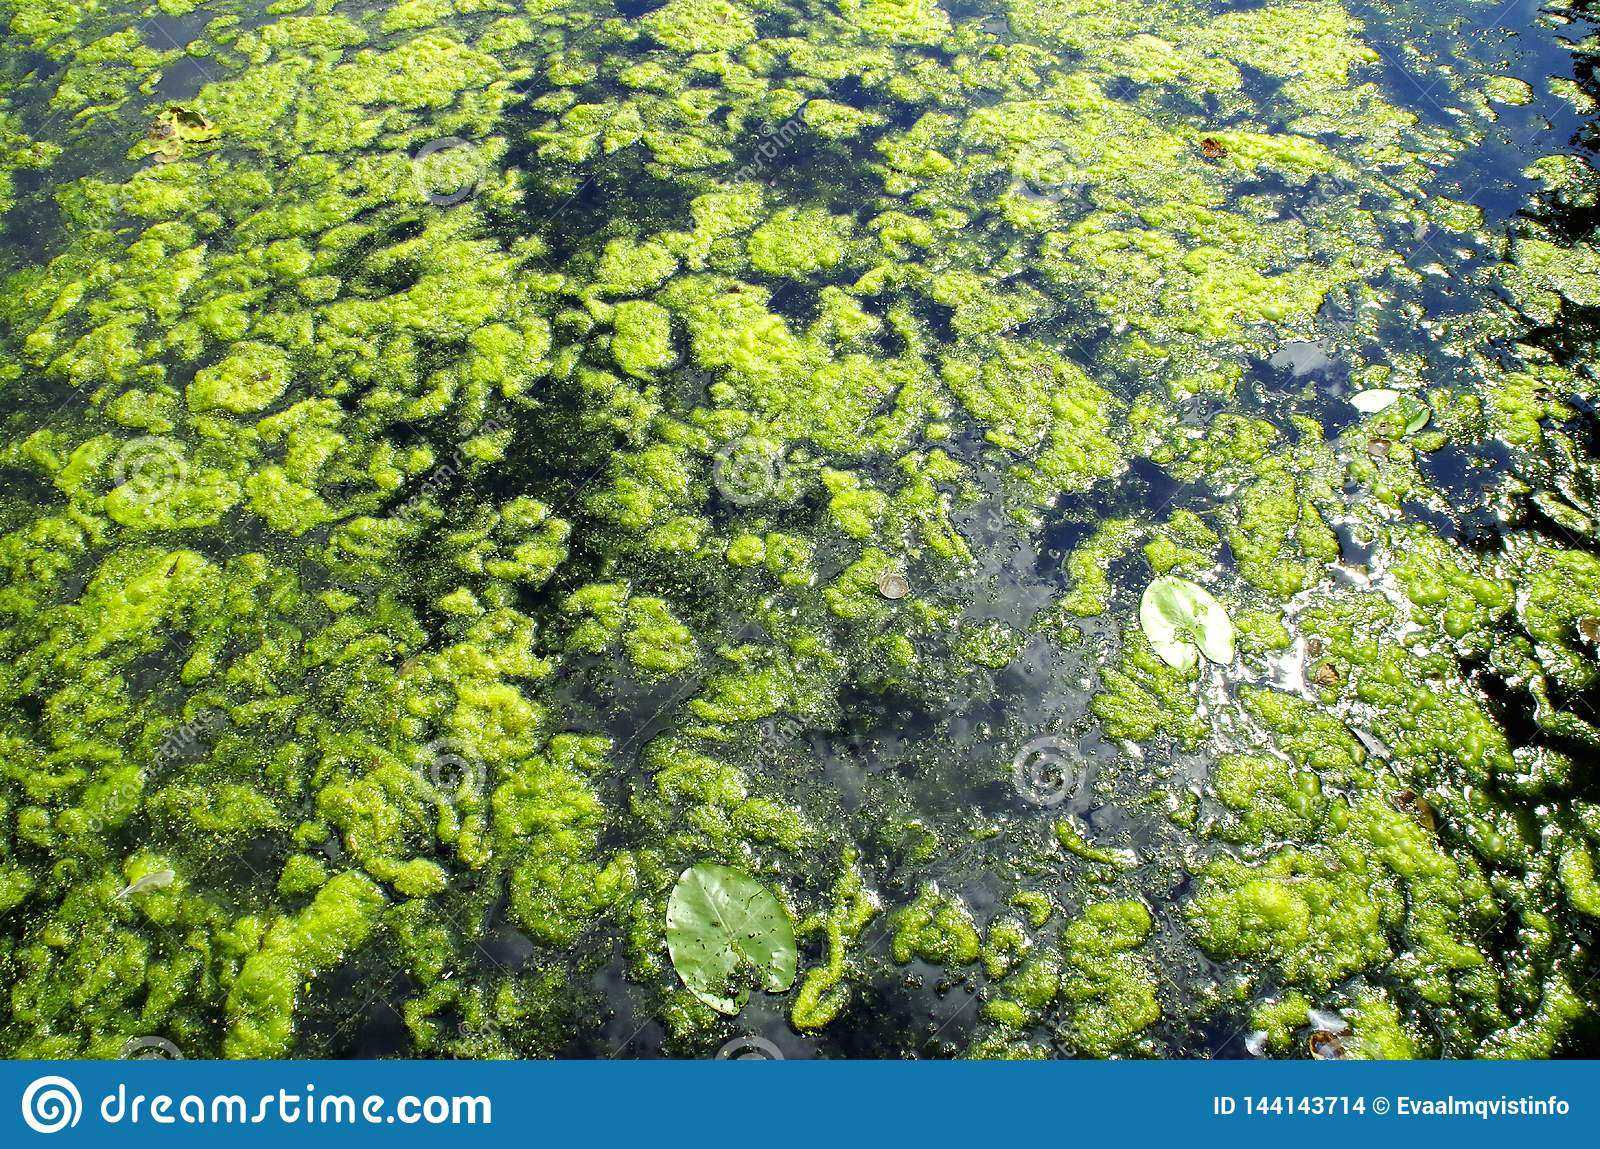 Algae bloom in lake.